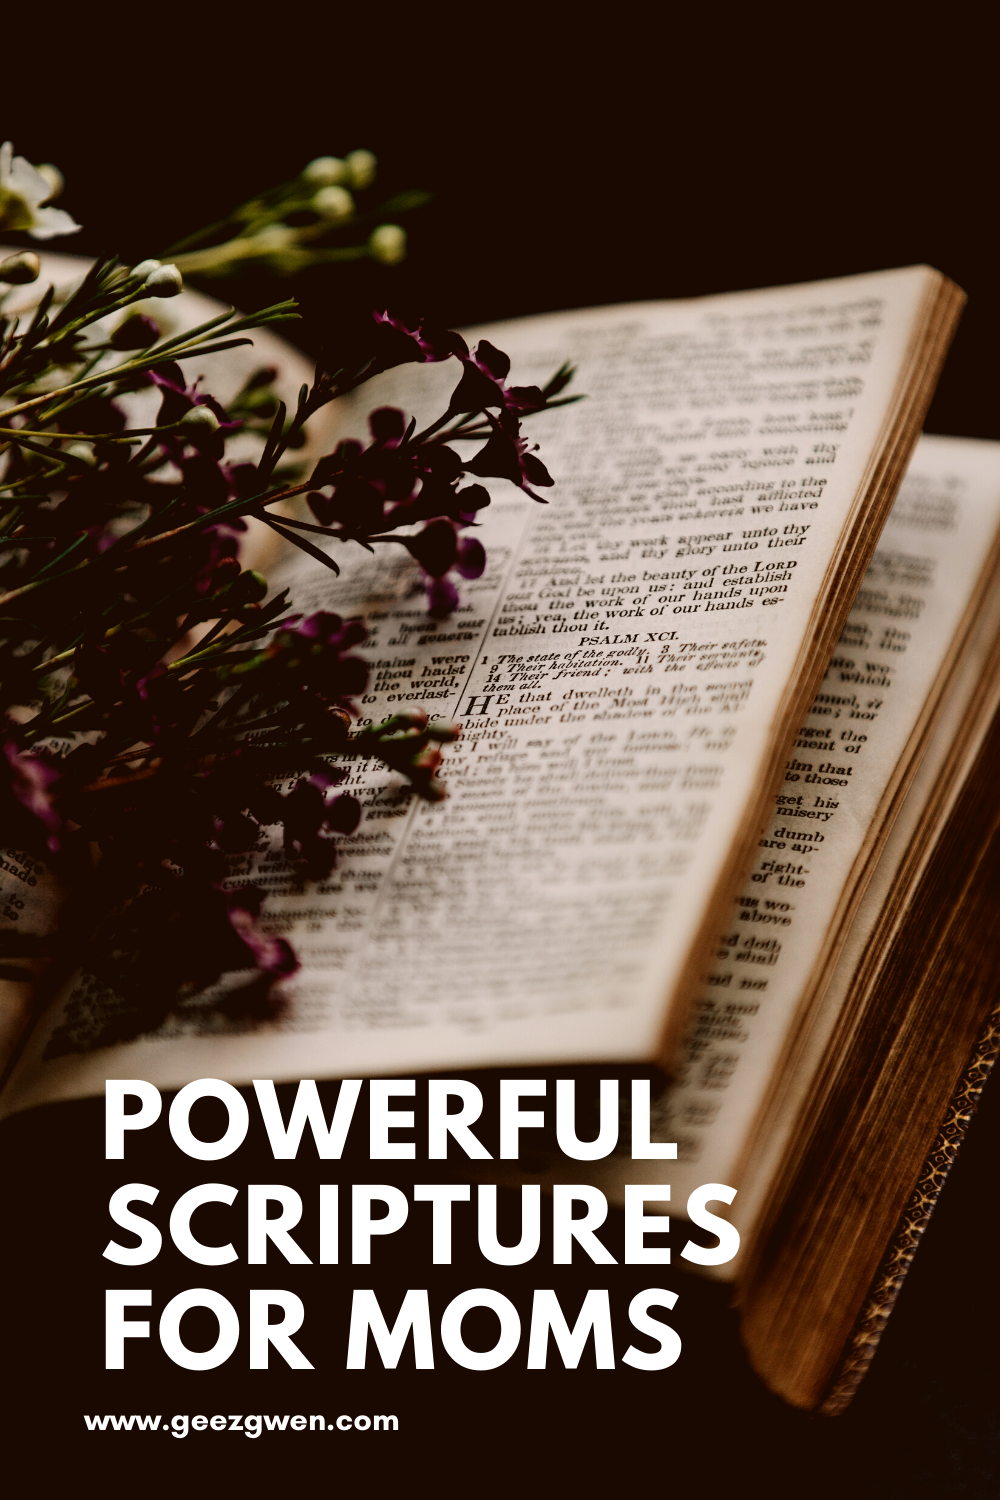 Powerful bible verses for Moms